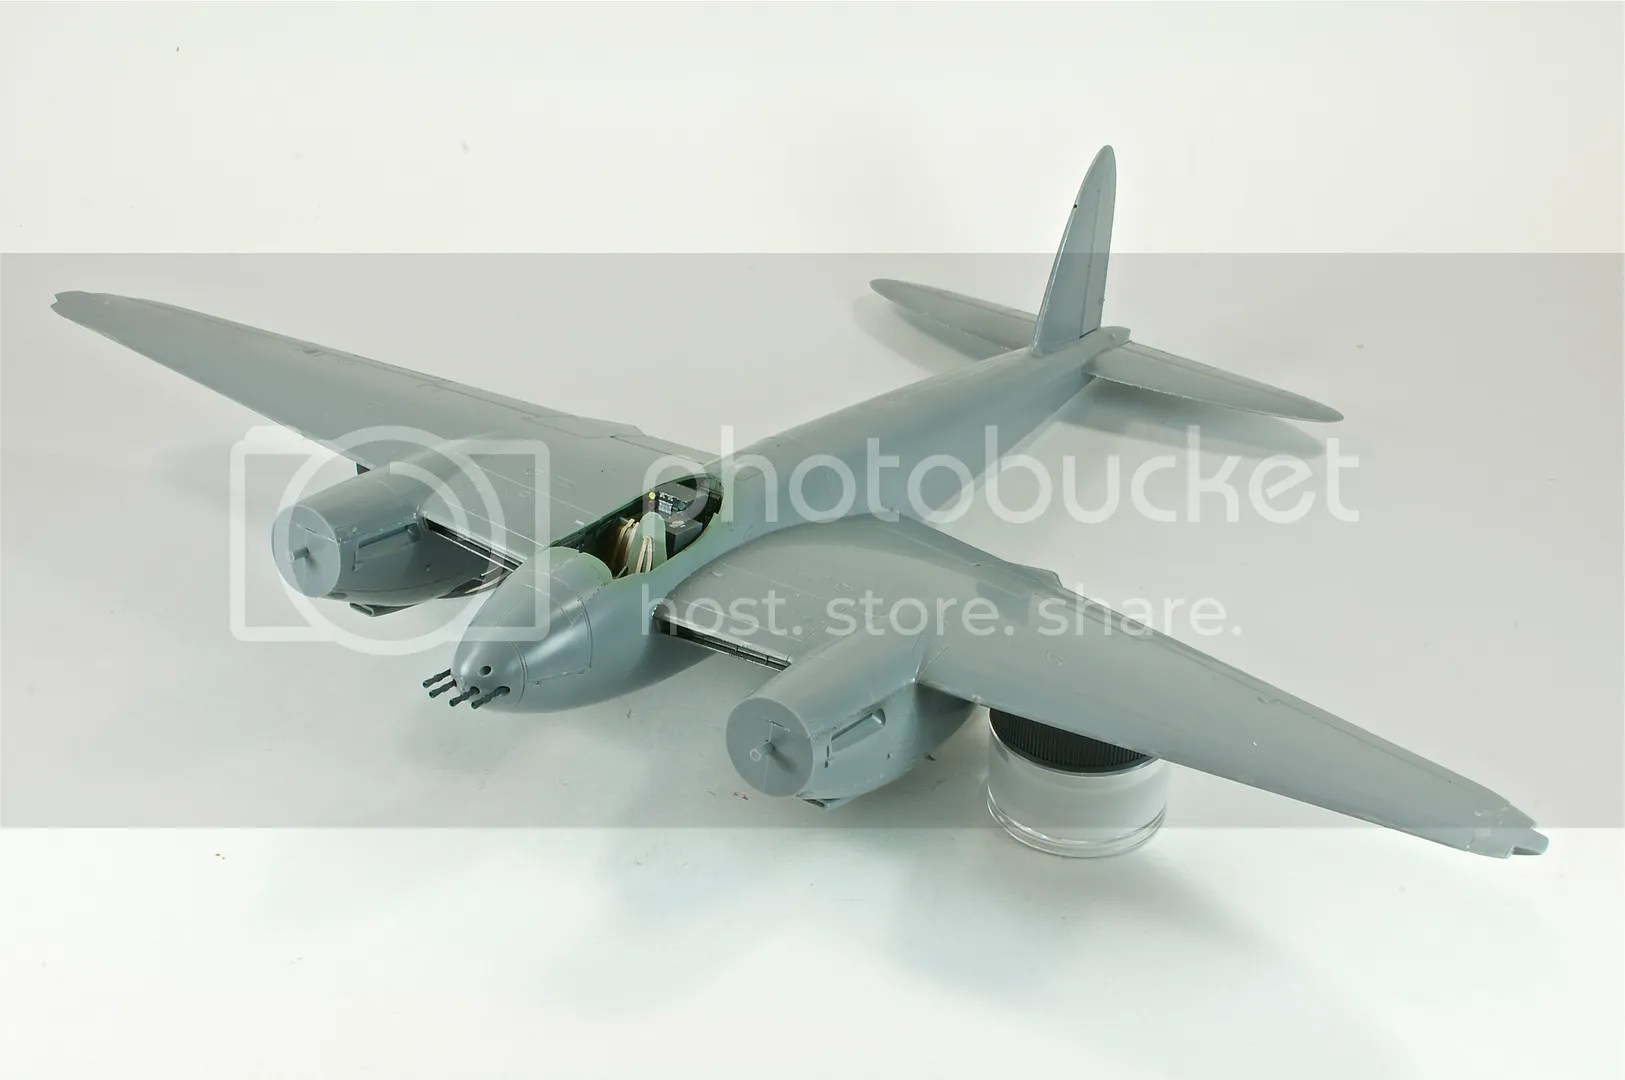 Mosquito NF.II,2011,February,1/48,Tamiya,scale models